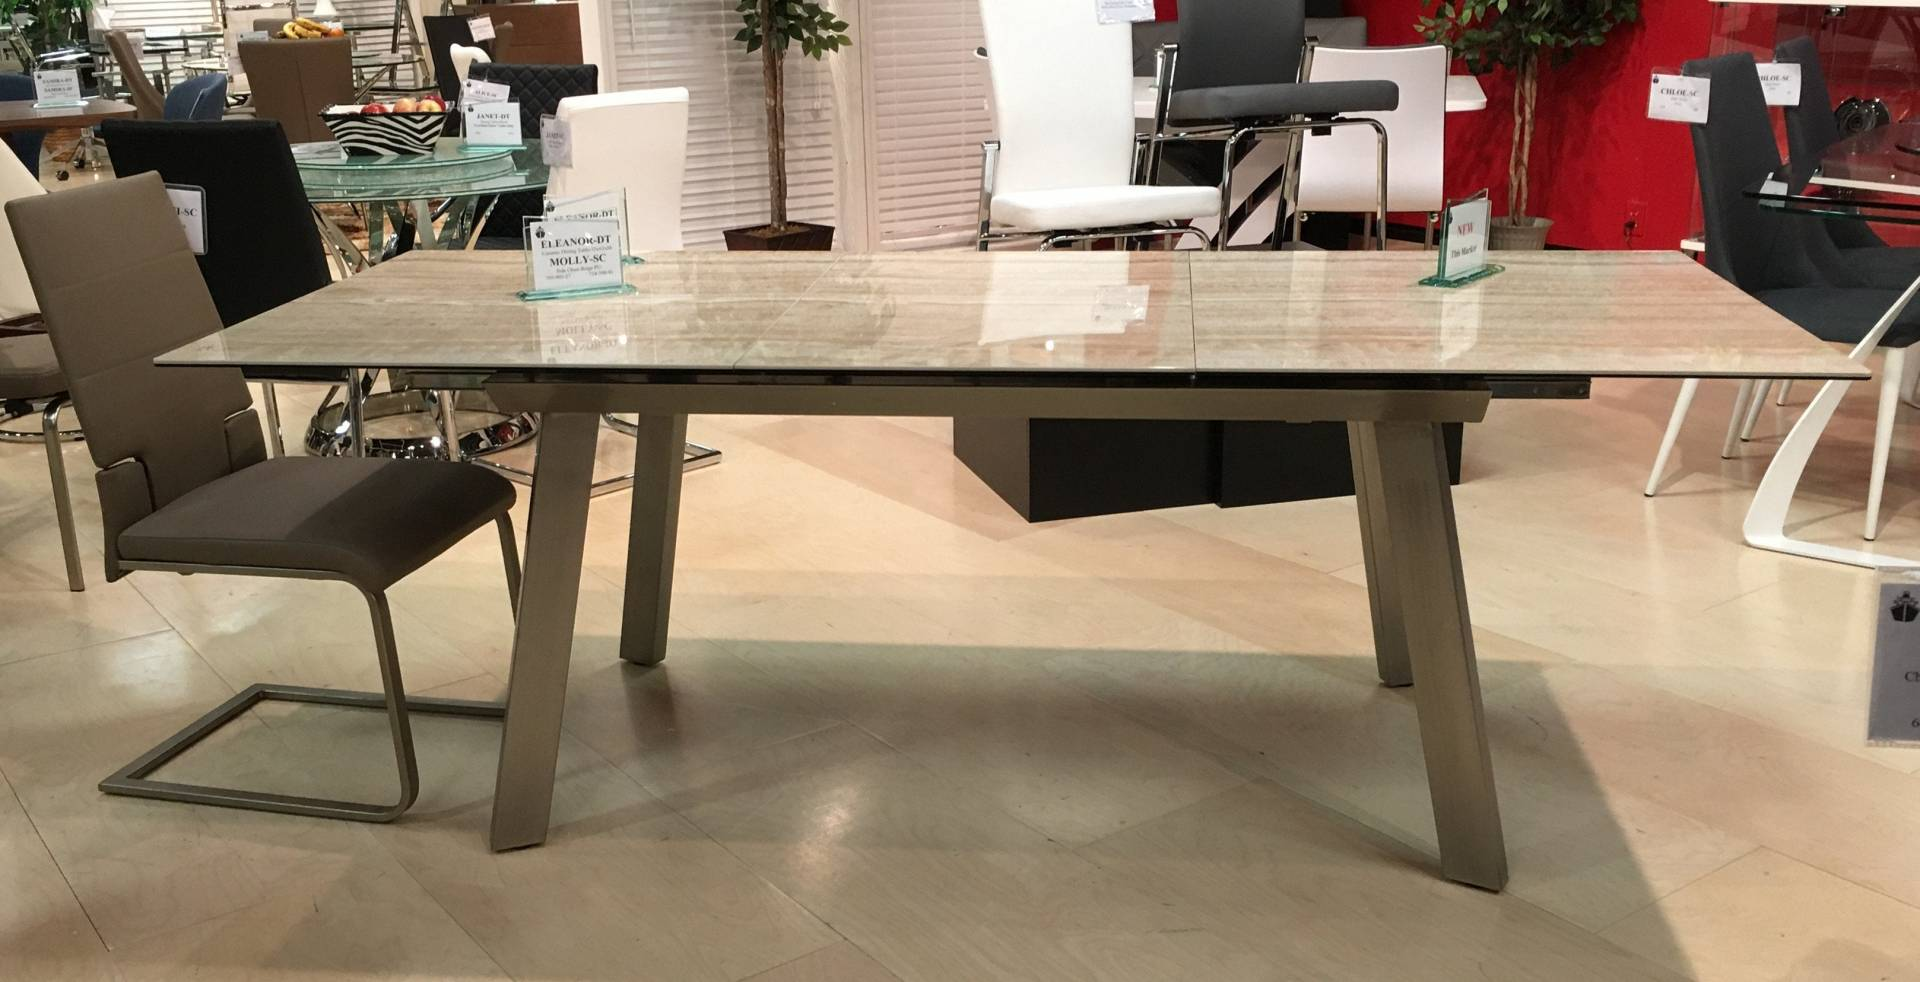 Chintaly ELEANOR-DT 63x35 glass&ceramic table w/ pop up extension from Chintaly